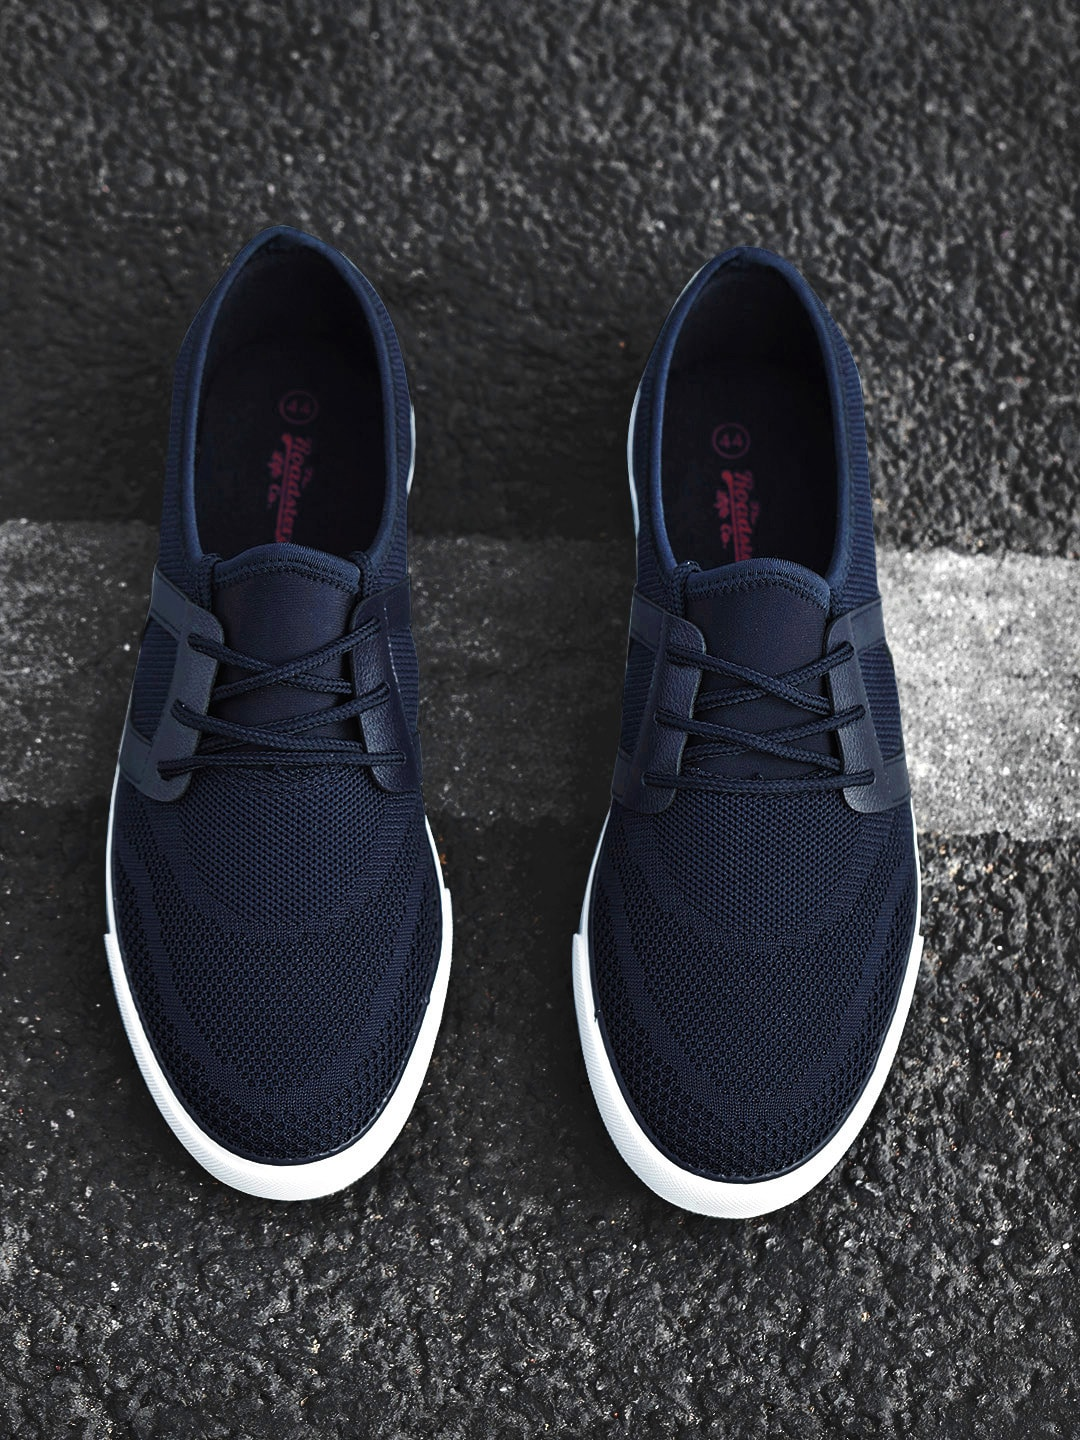 6b2c76719 Buy Roadster Brand Casual Shoes Online from Myntra